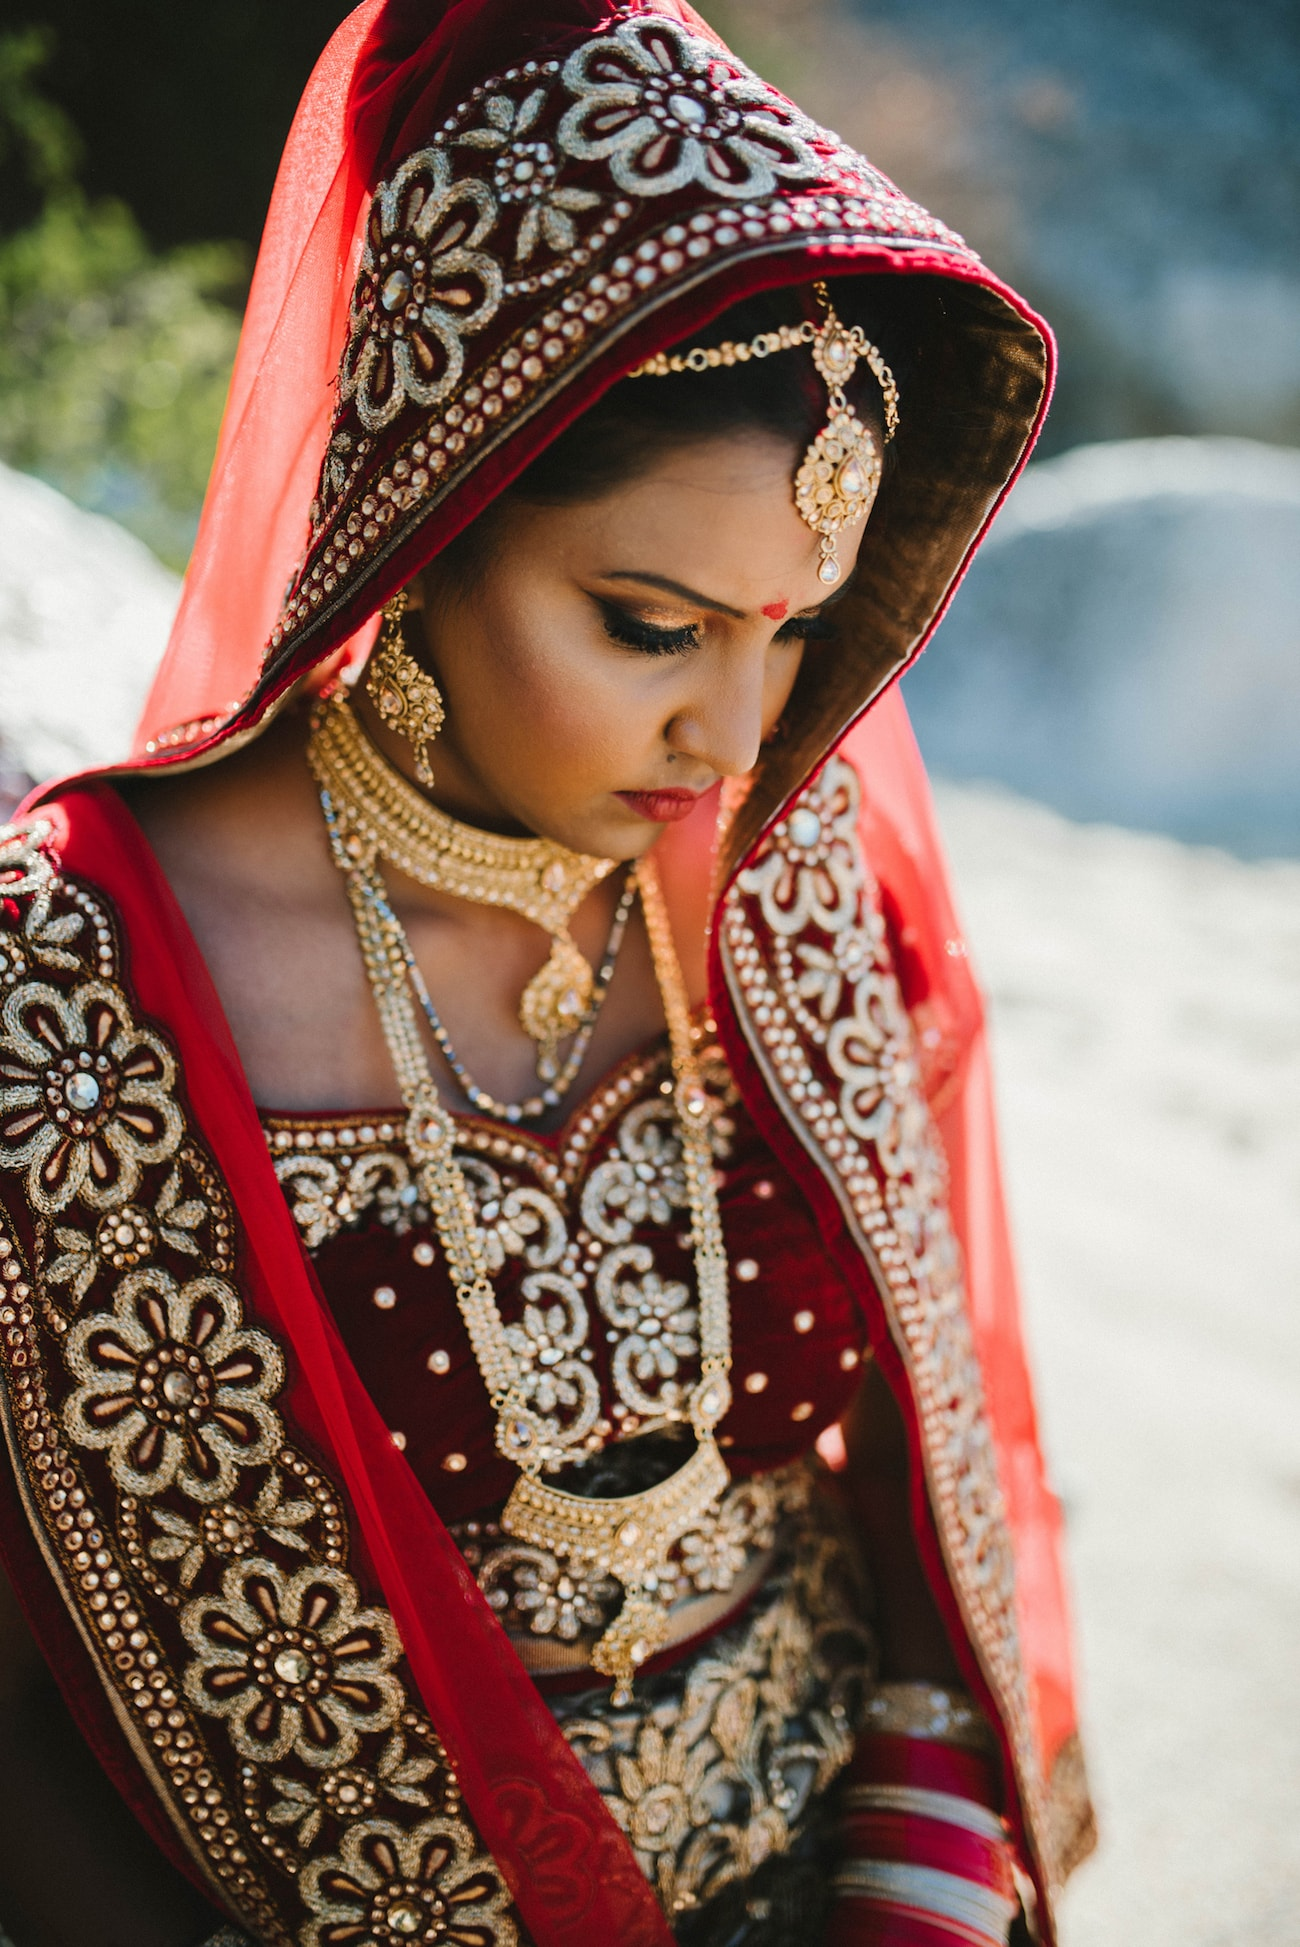 Traditional Hindu Bride Solah Shringar | Image: Claire Thomson